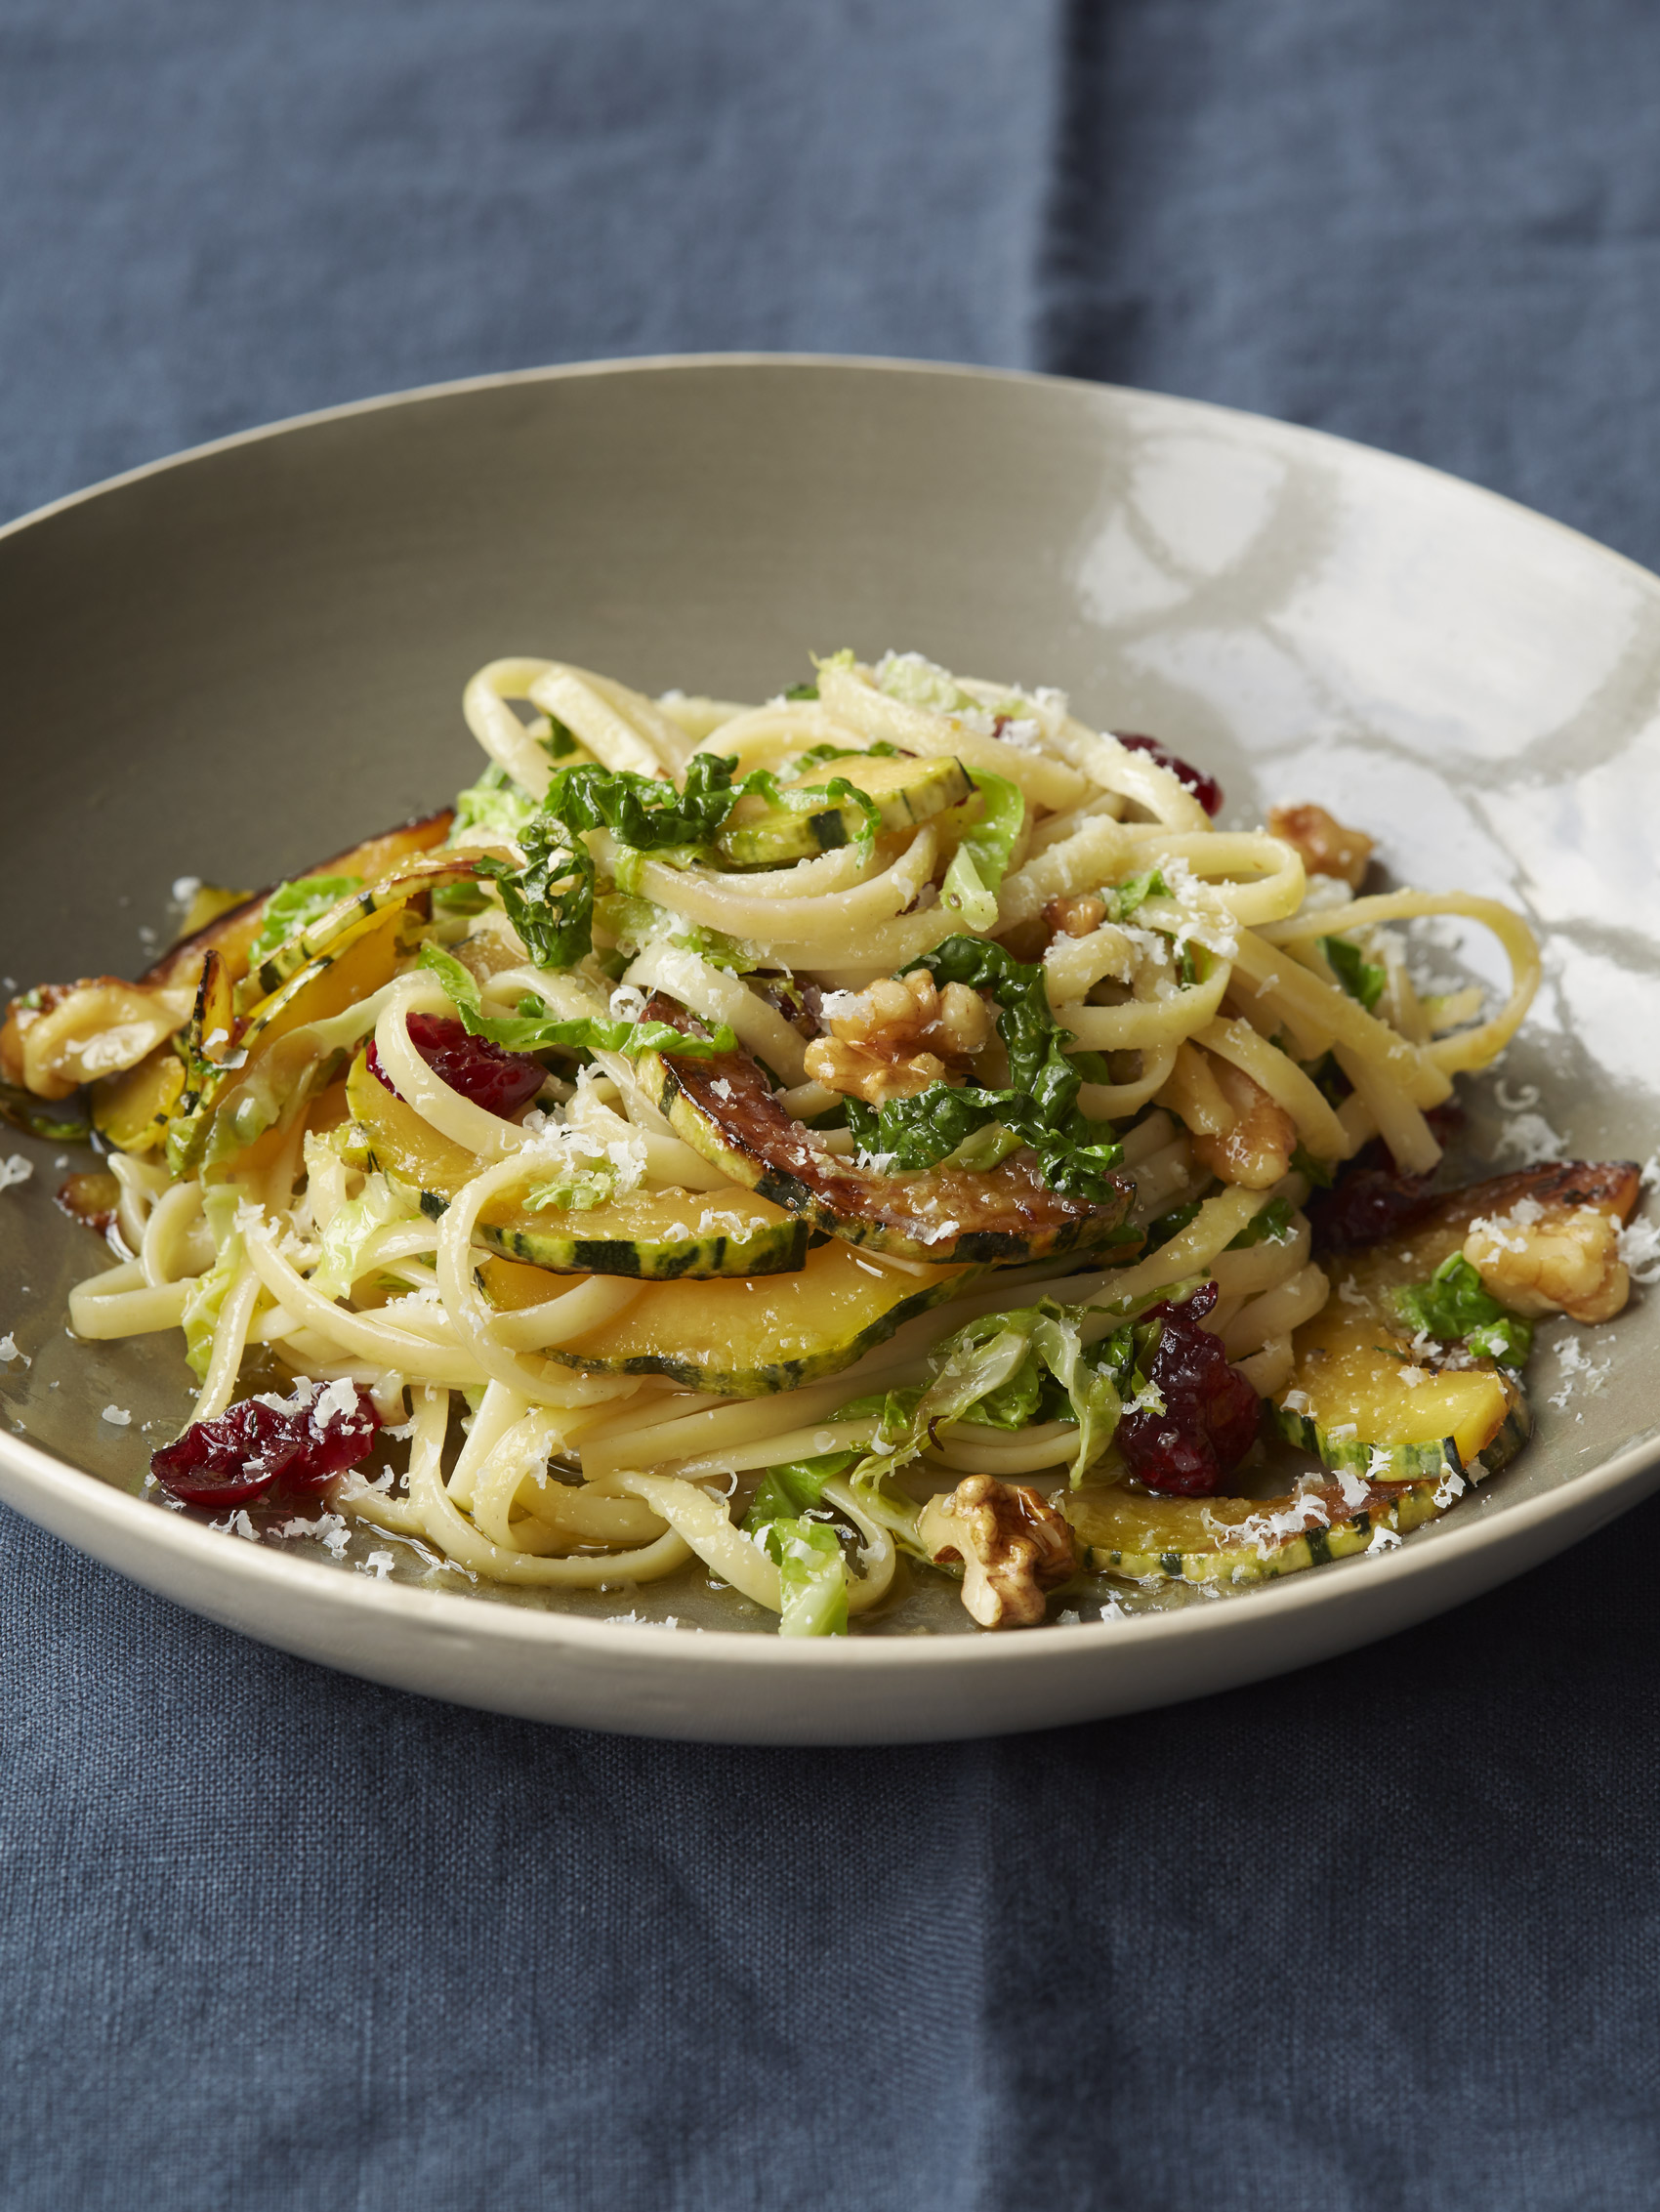 Pasta_with_Cabbage__2276.jpg